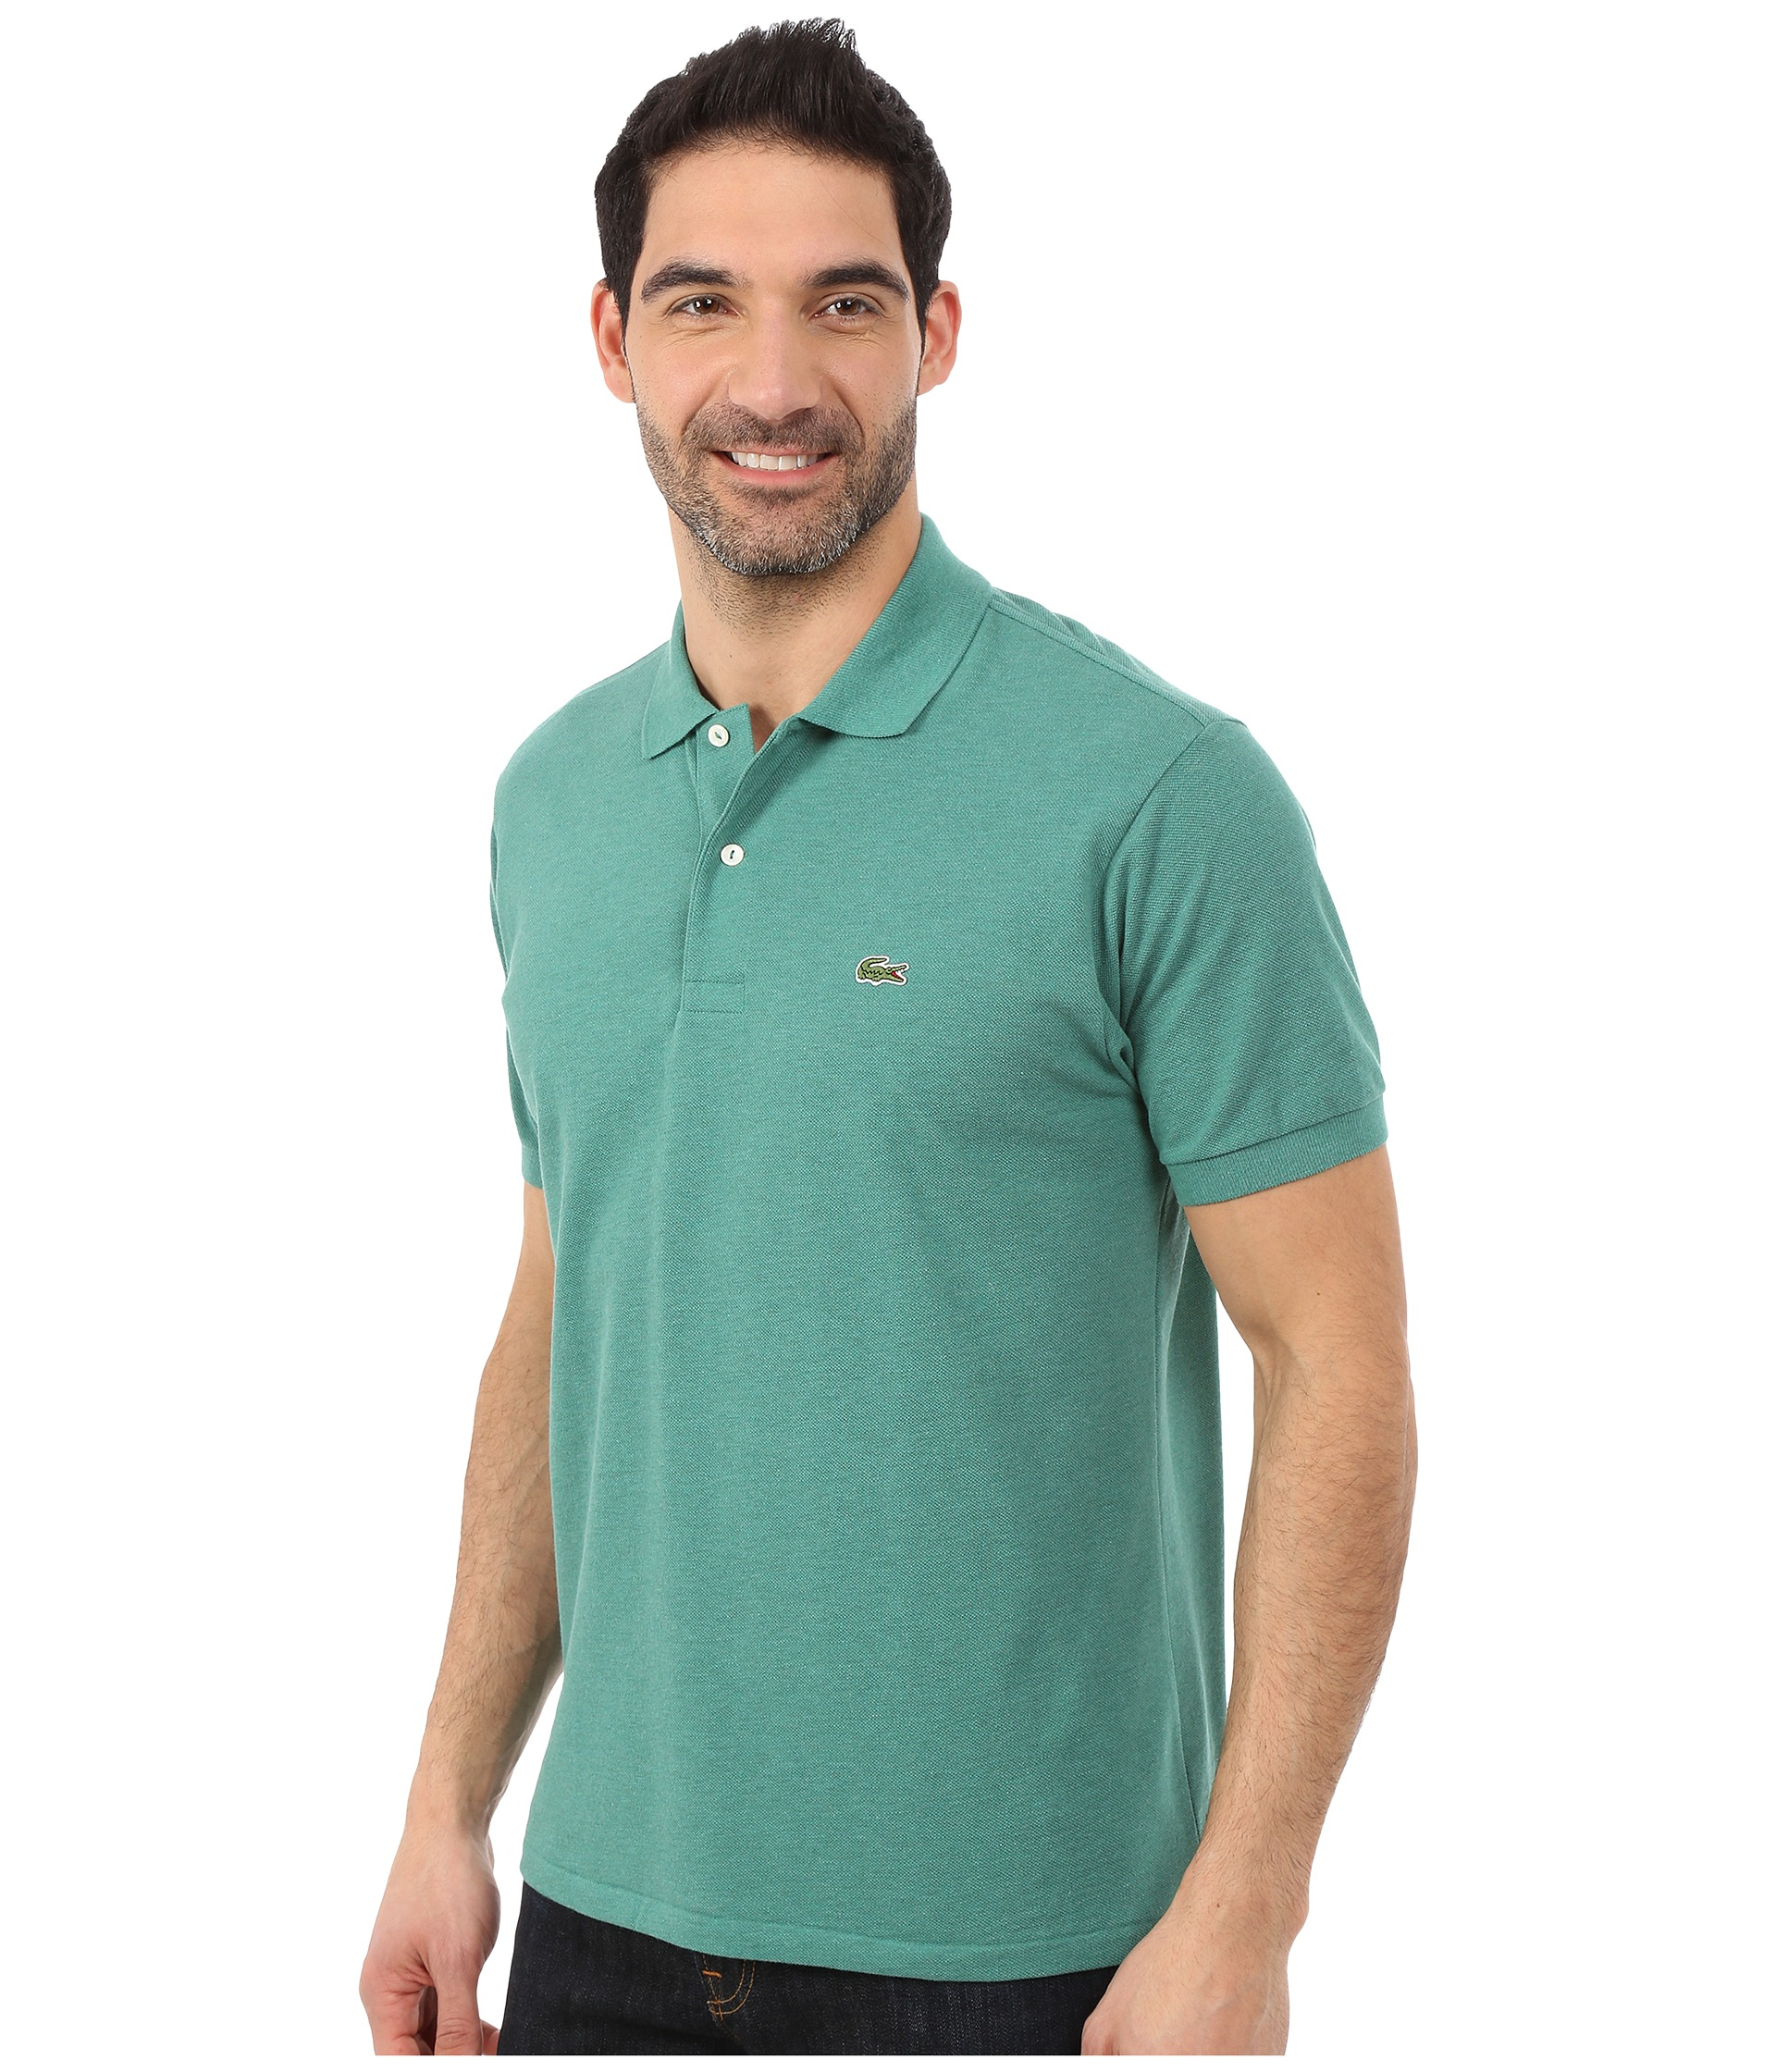 Lacoste short sleeve chine classic pique polo shirt for Short sleeve lacoste shirt